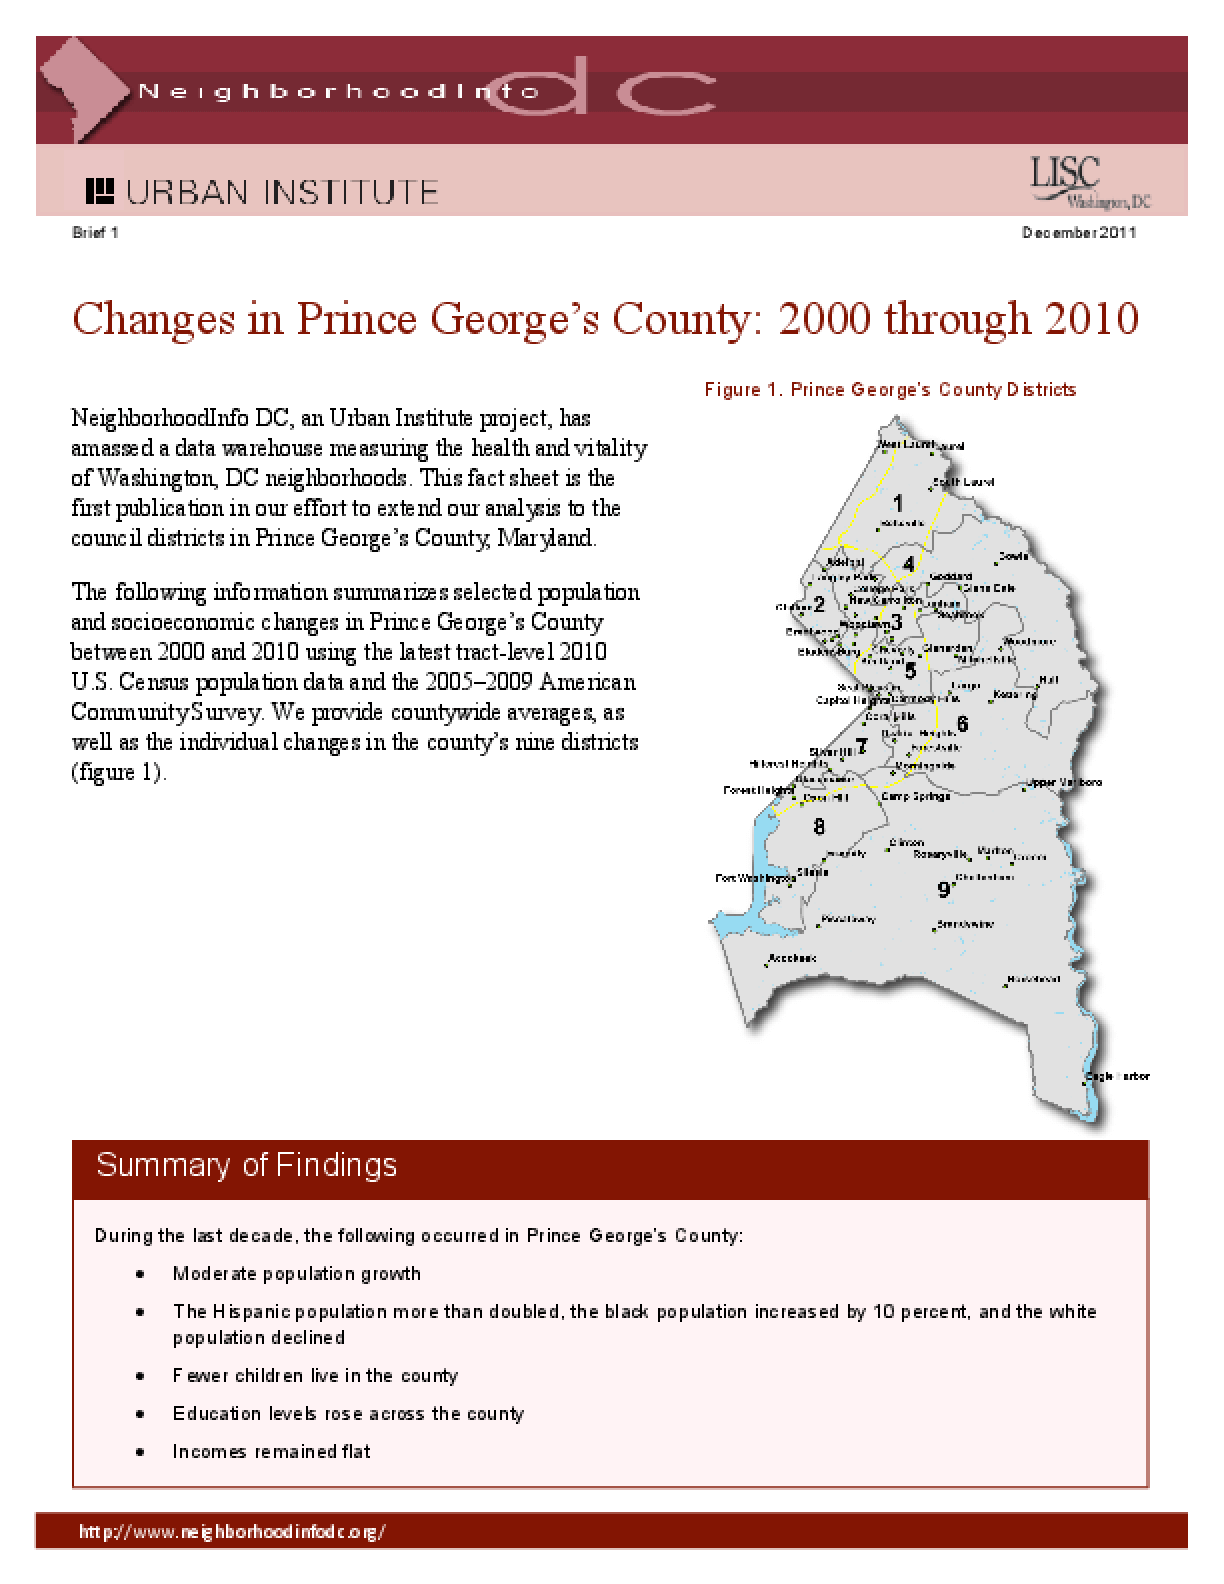 Changes in Prince George's County: 2000 Through 2010